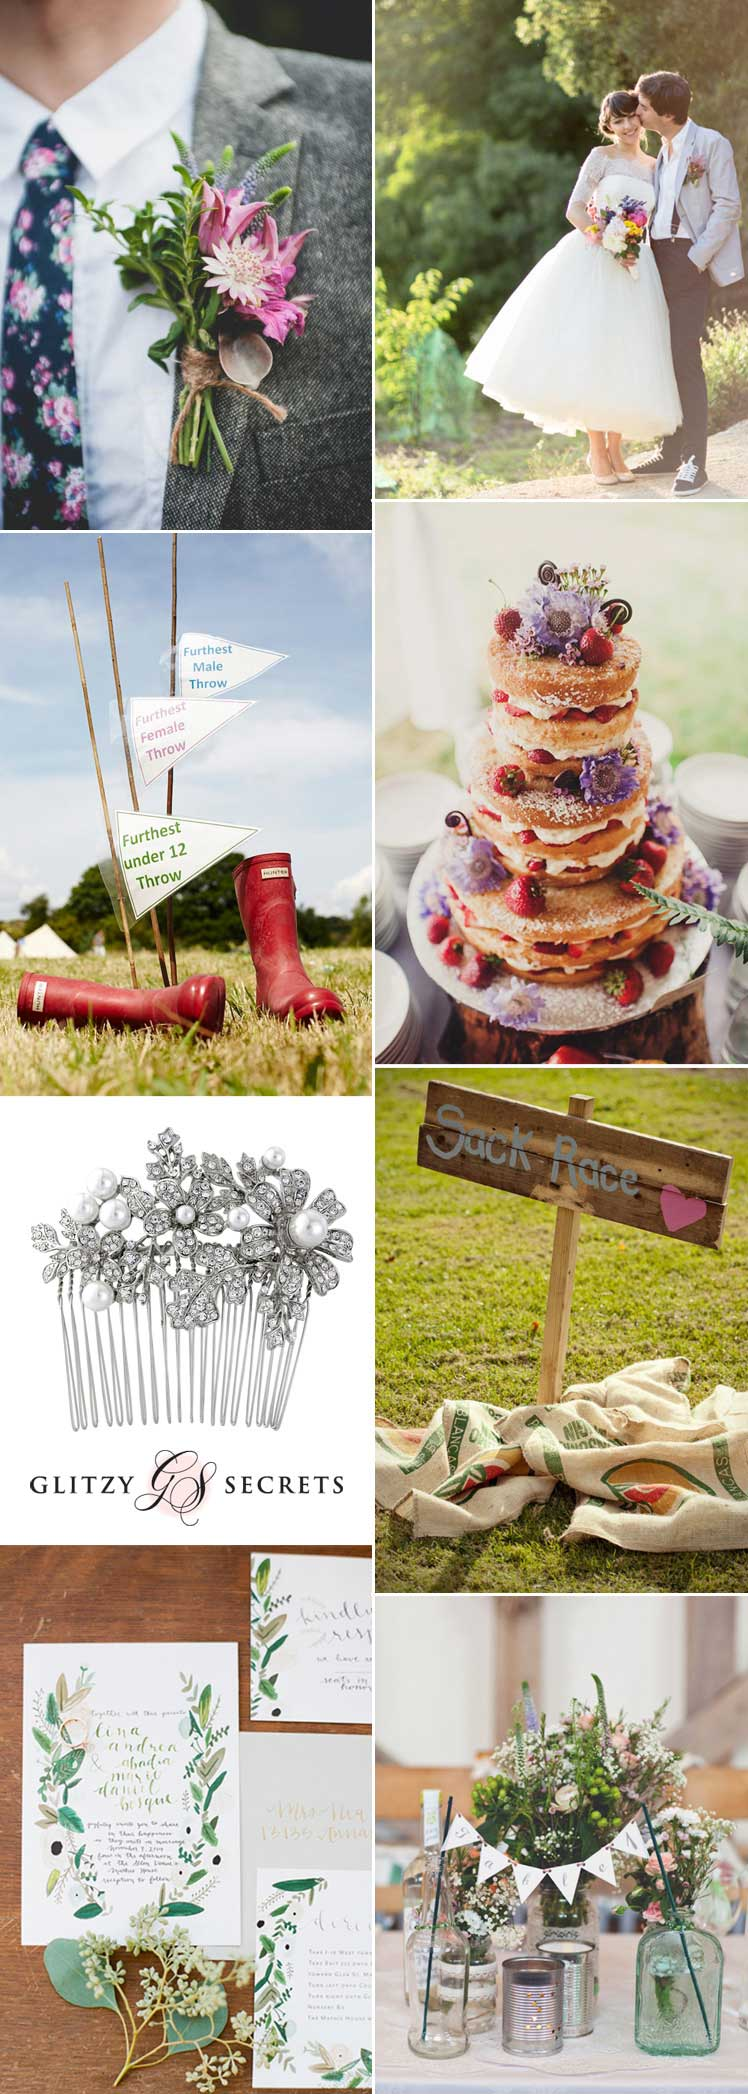 full of summer fun - village fete wedding ideas